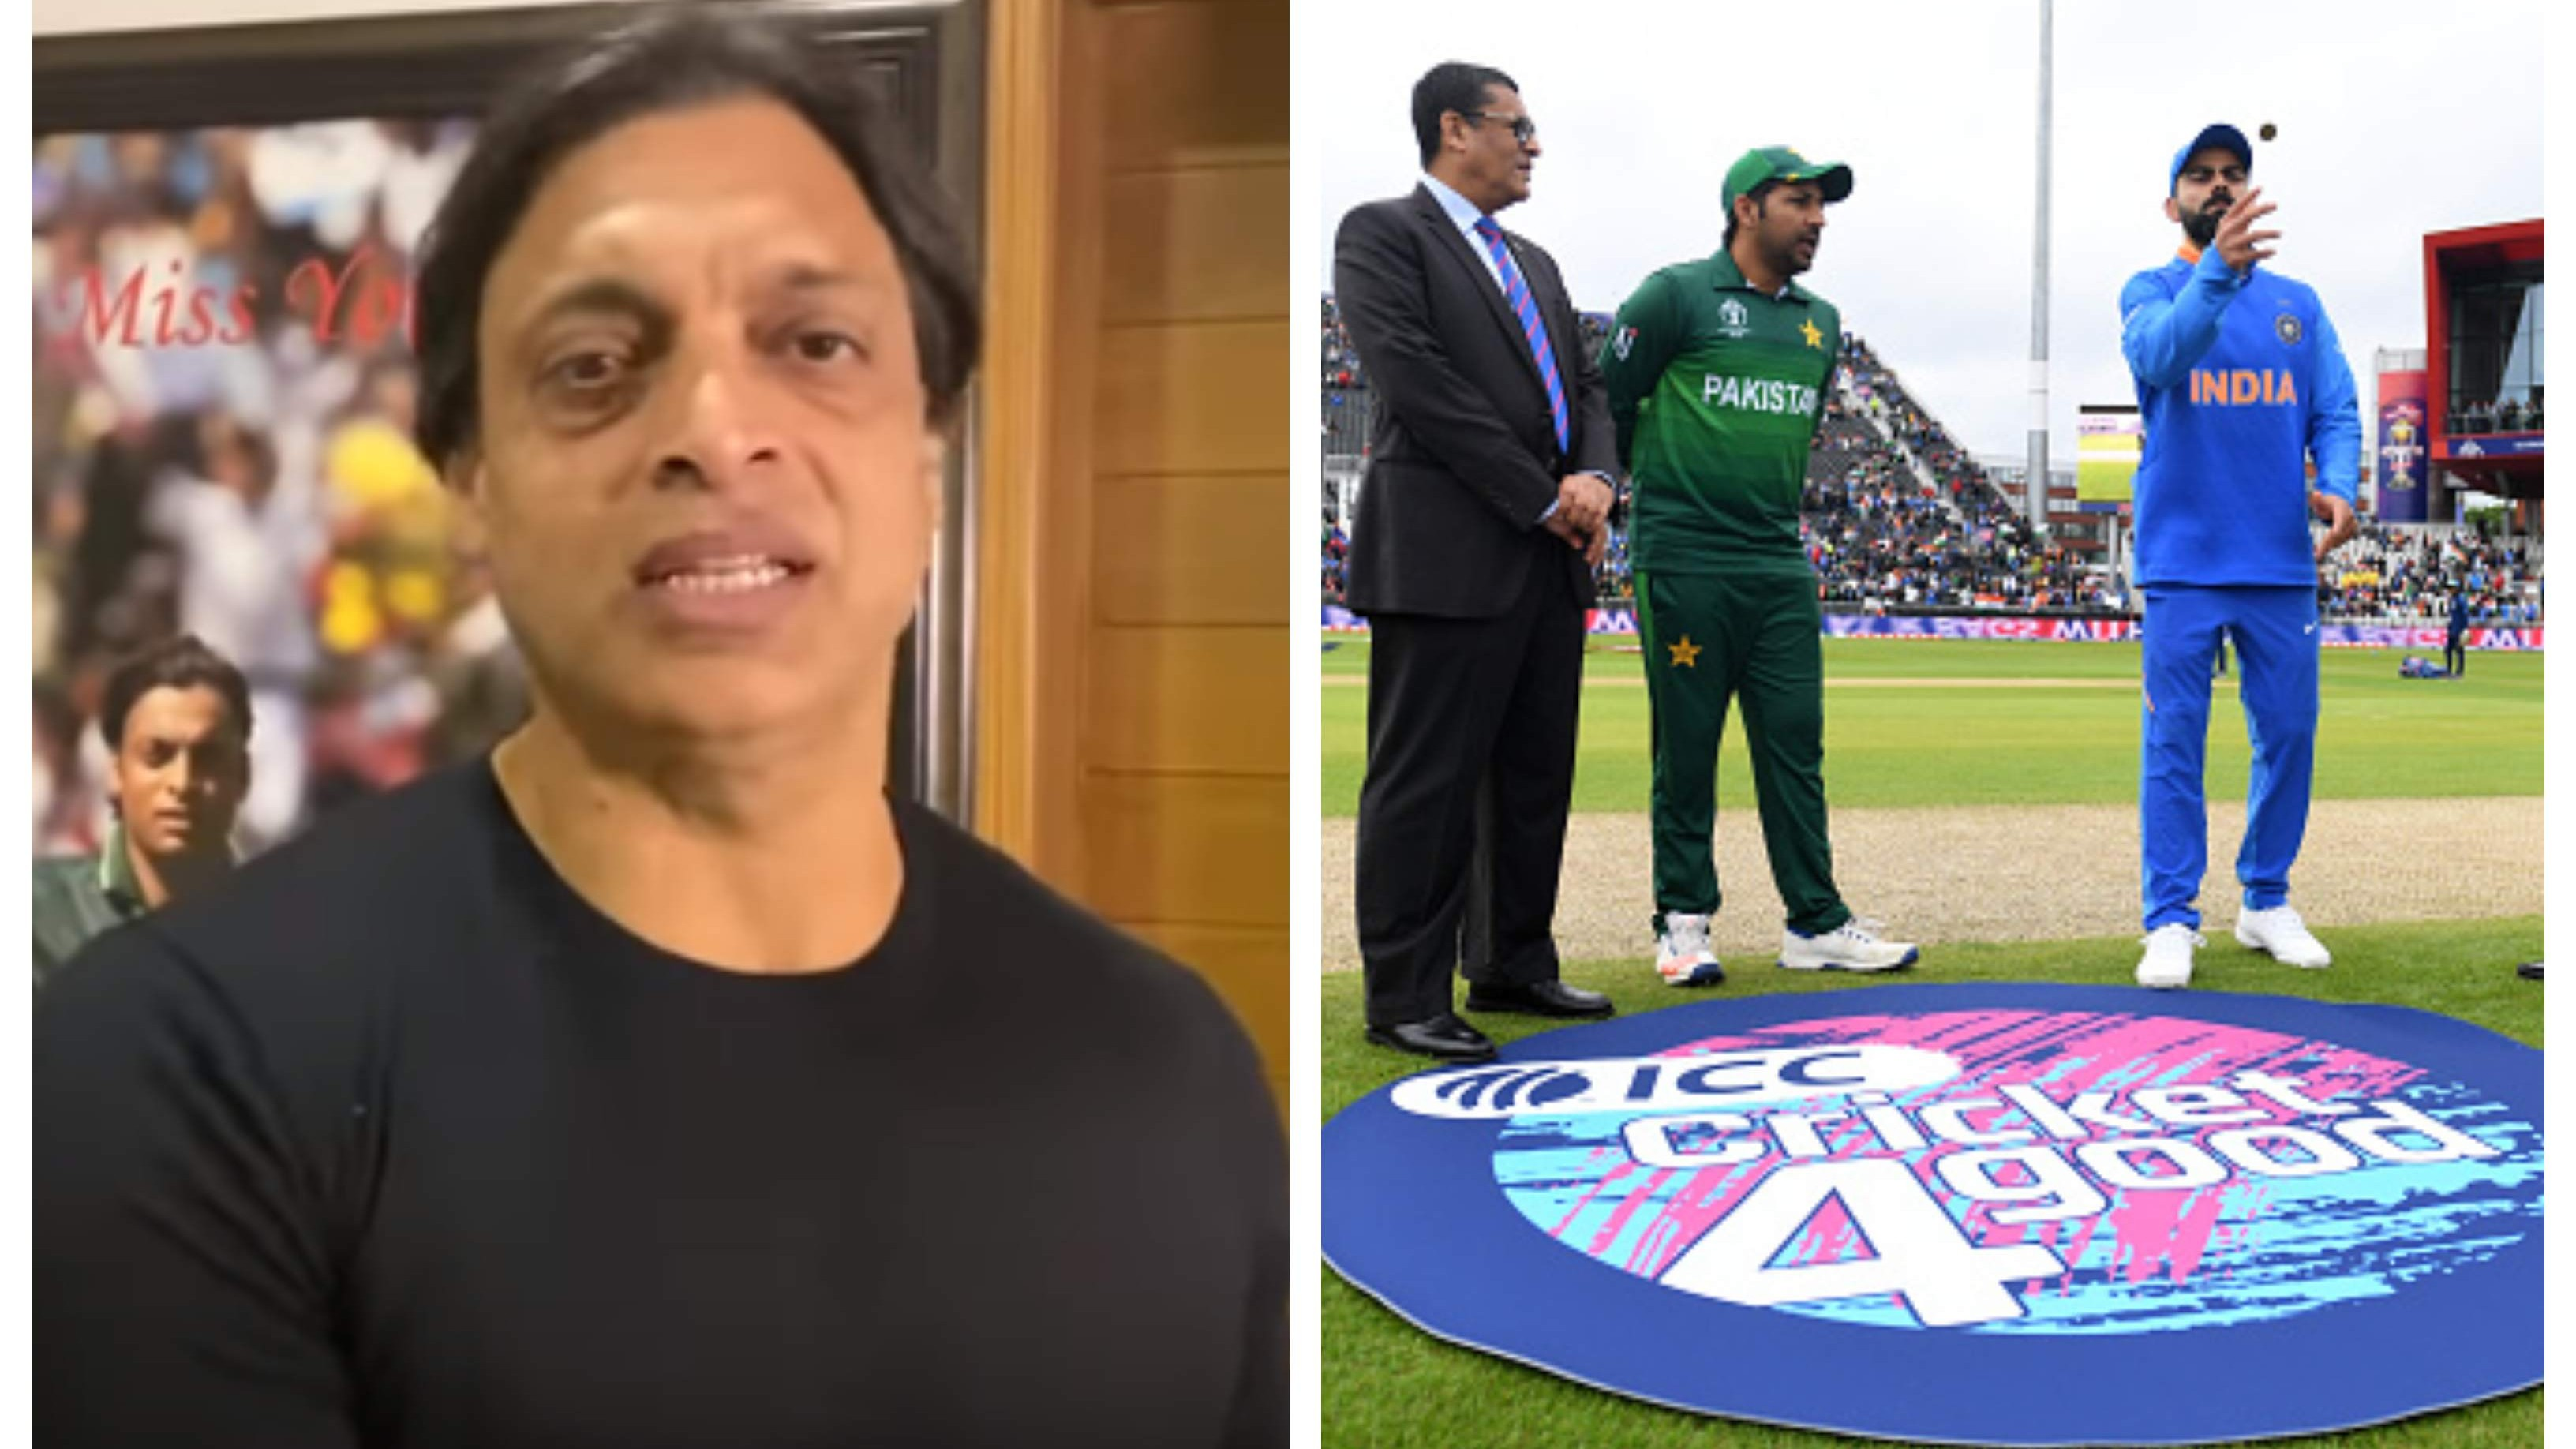 WATCH: 'We exchange onions and tomatoes then why not play cricket' - Akhtar bats for Indo-Pak bilateral ties